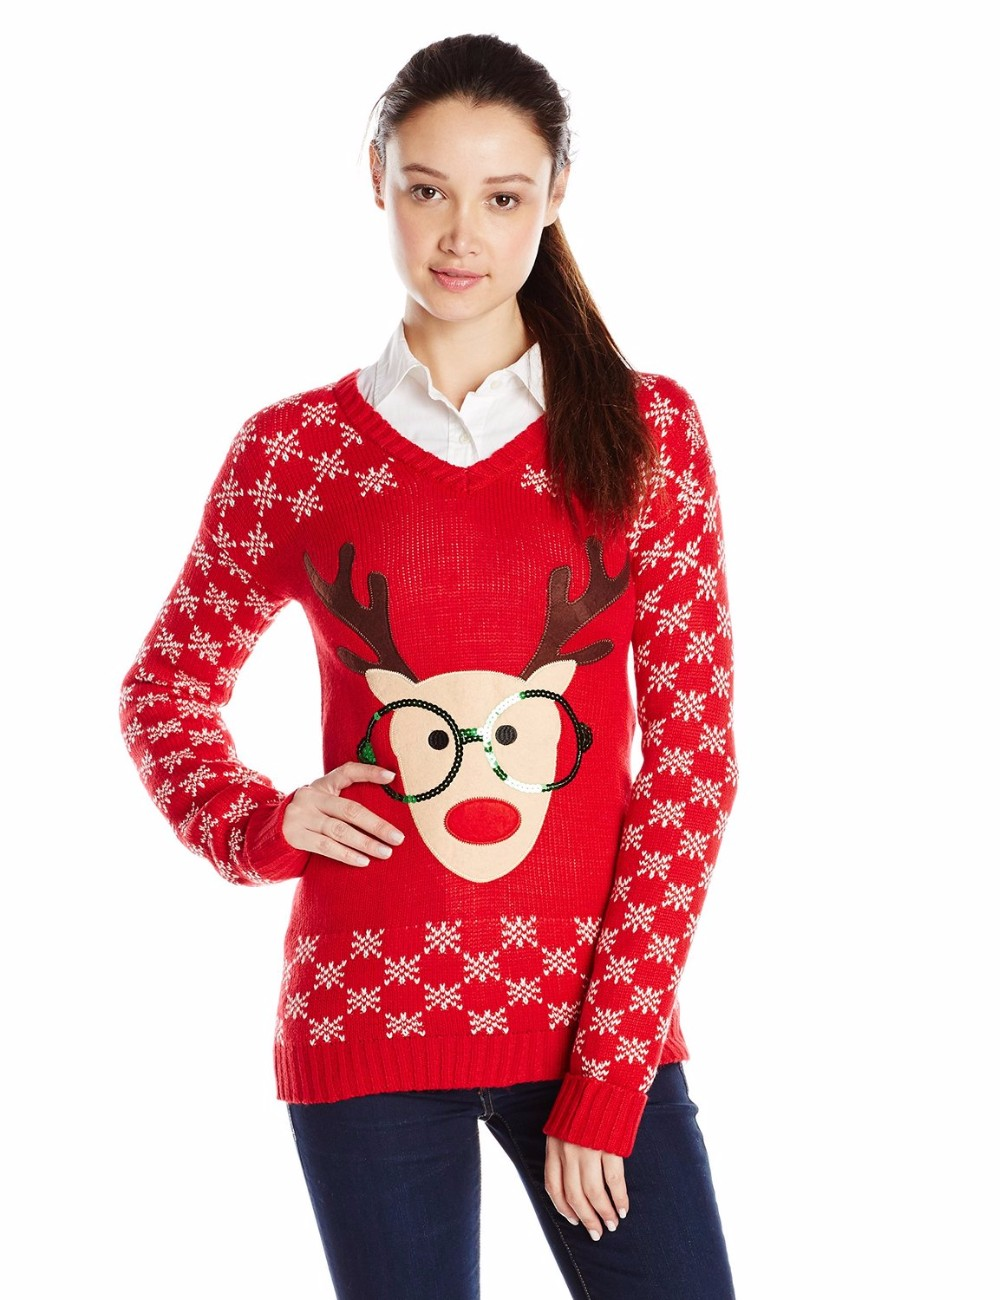 Women Red Sweater Sequined Glasses Santa Reindeer Pattern Christmas Souviners